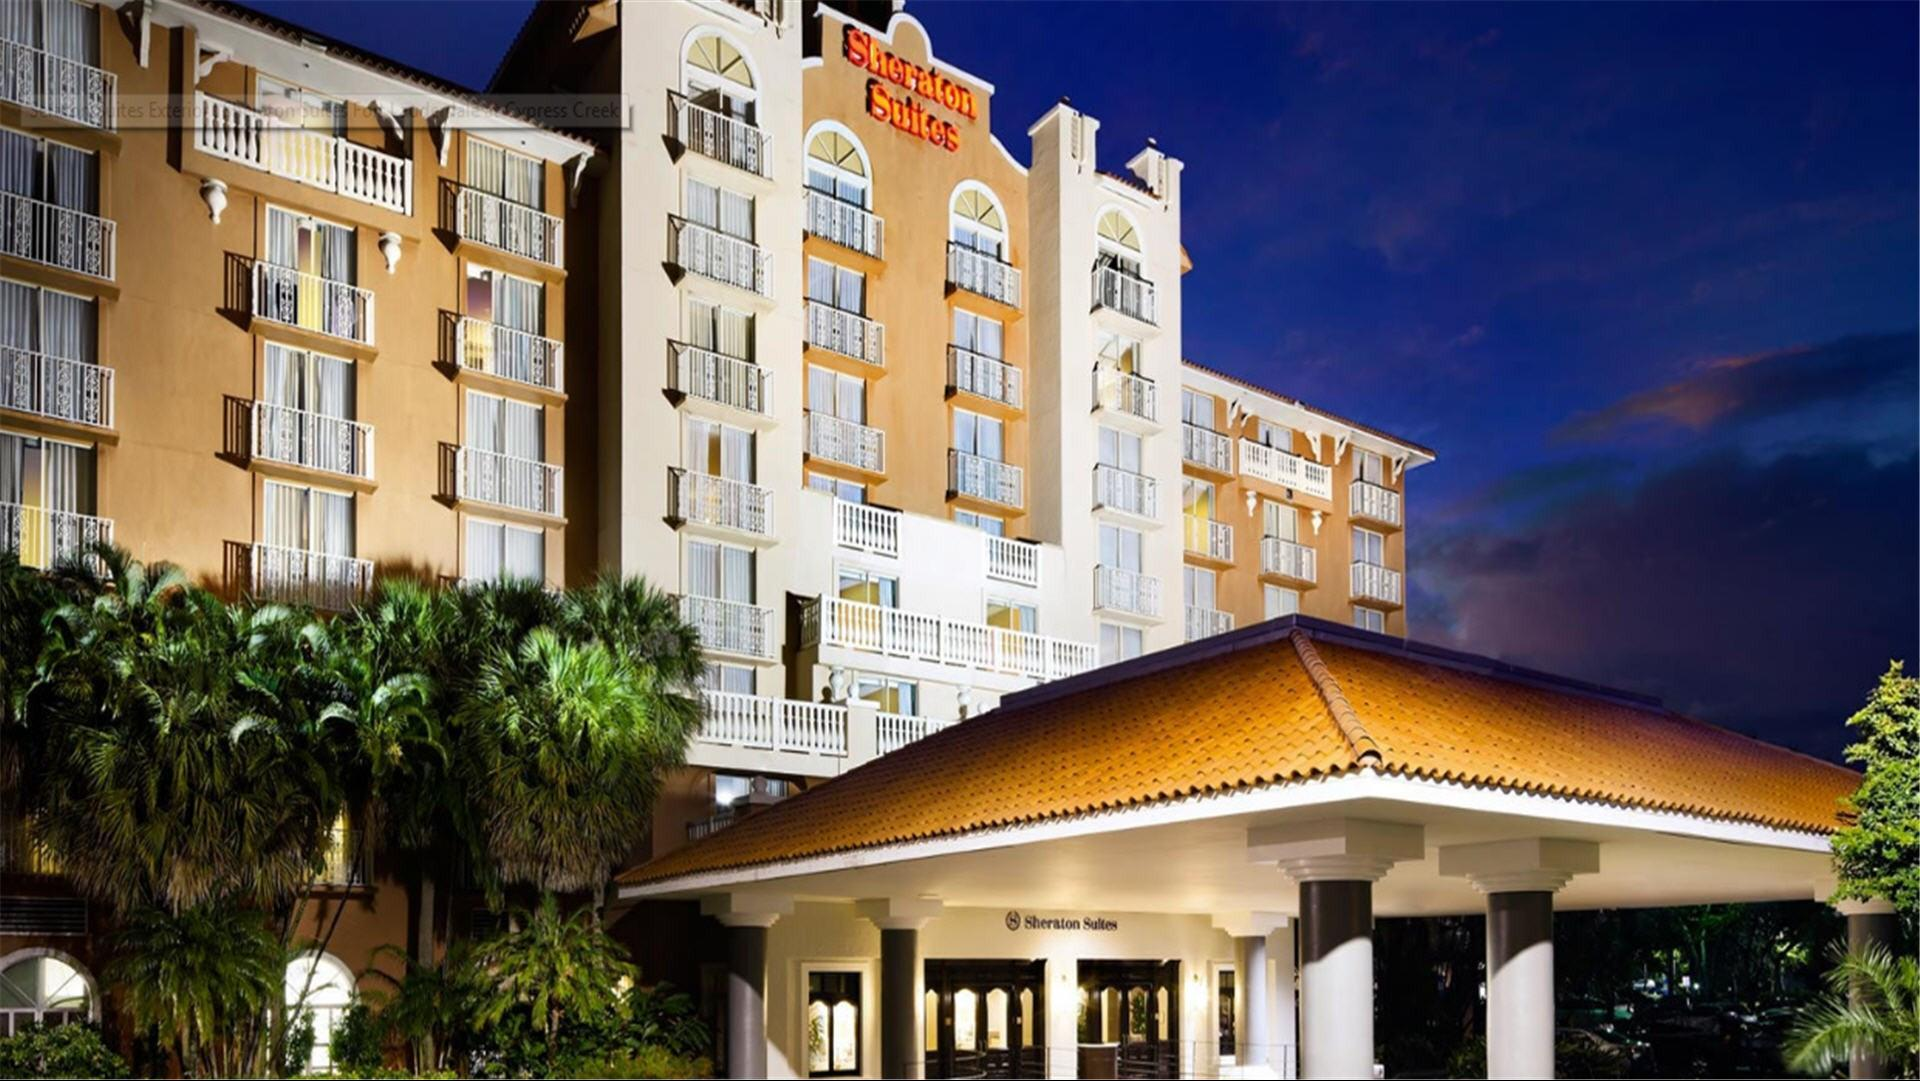 Meetings & Events at Sheraton Suites Ft Lauderdale at Cypress